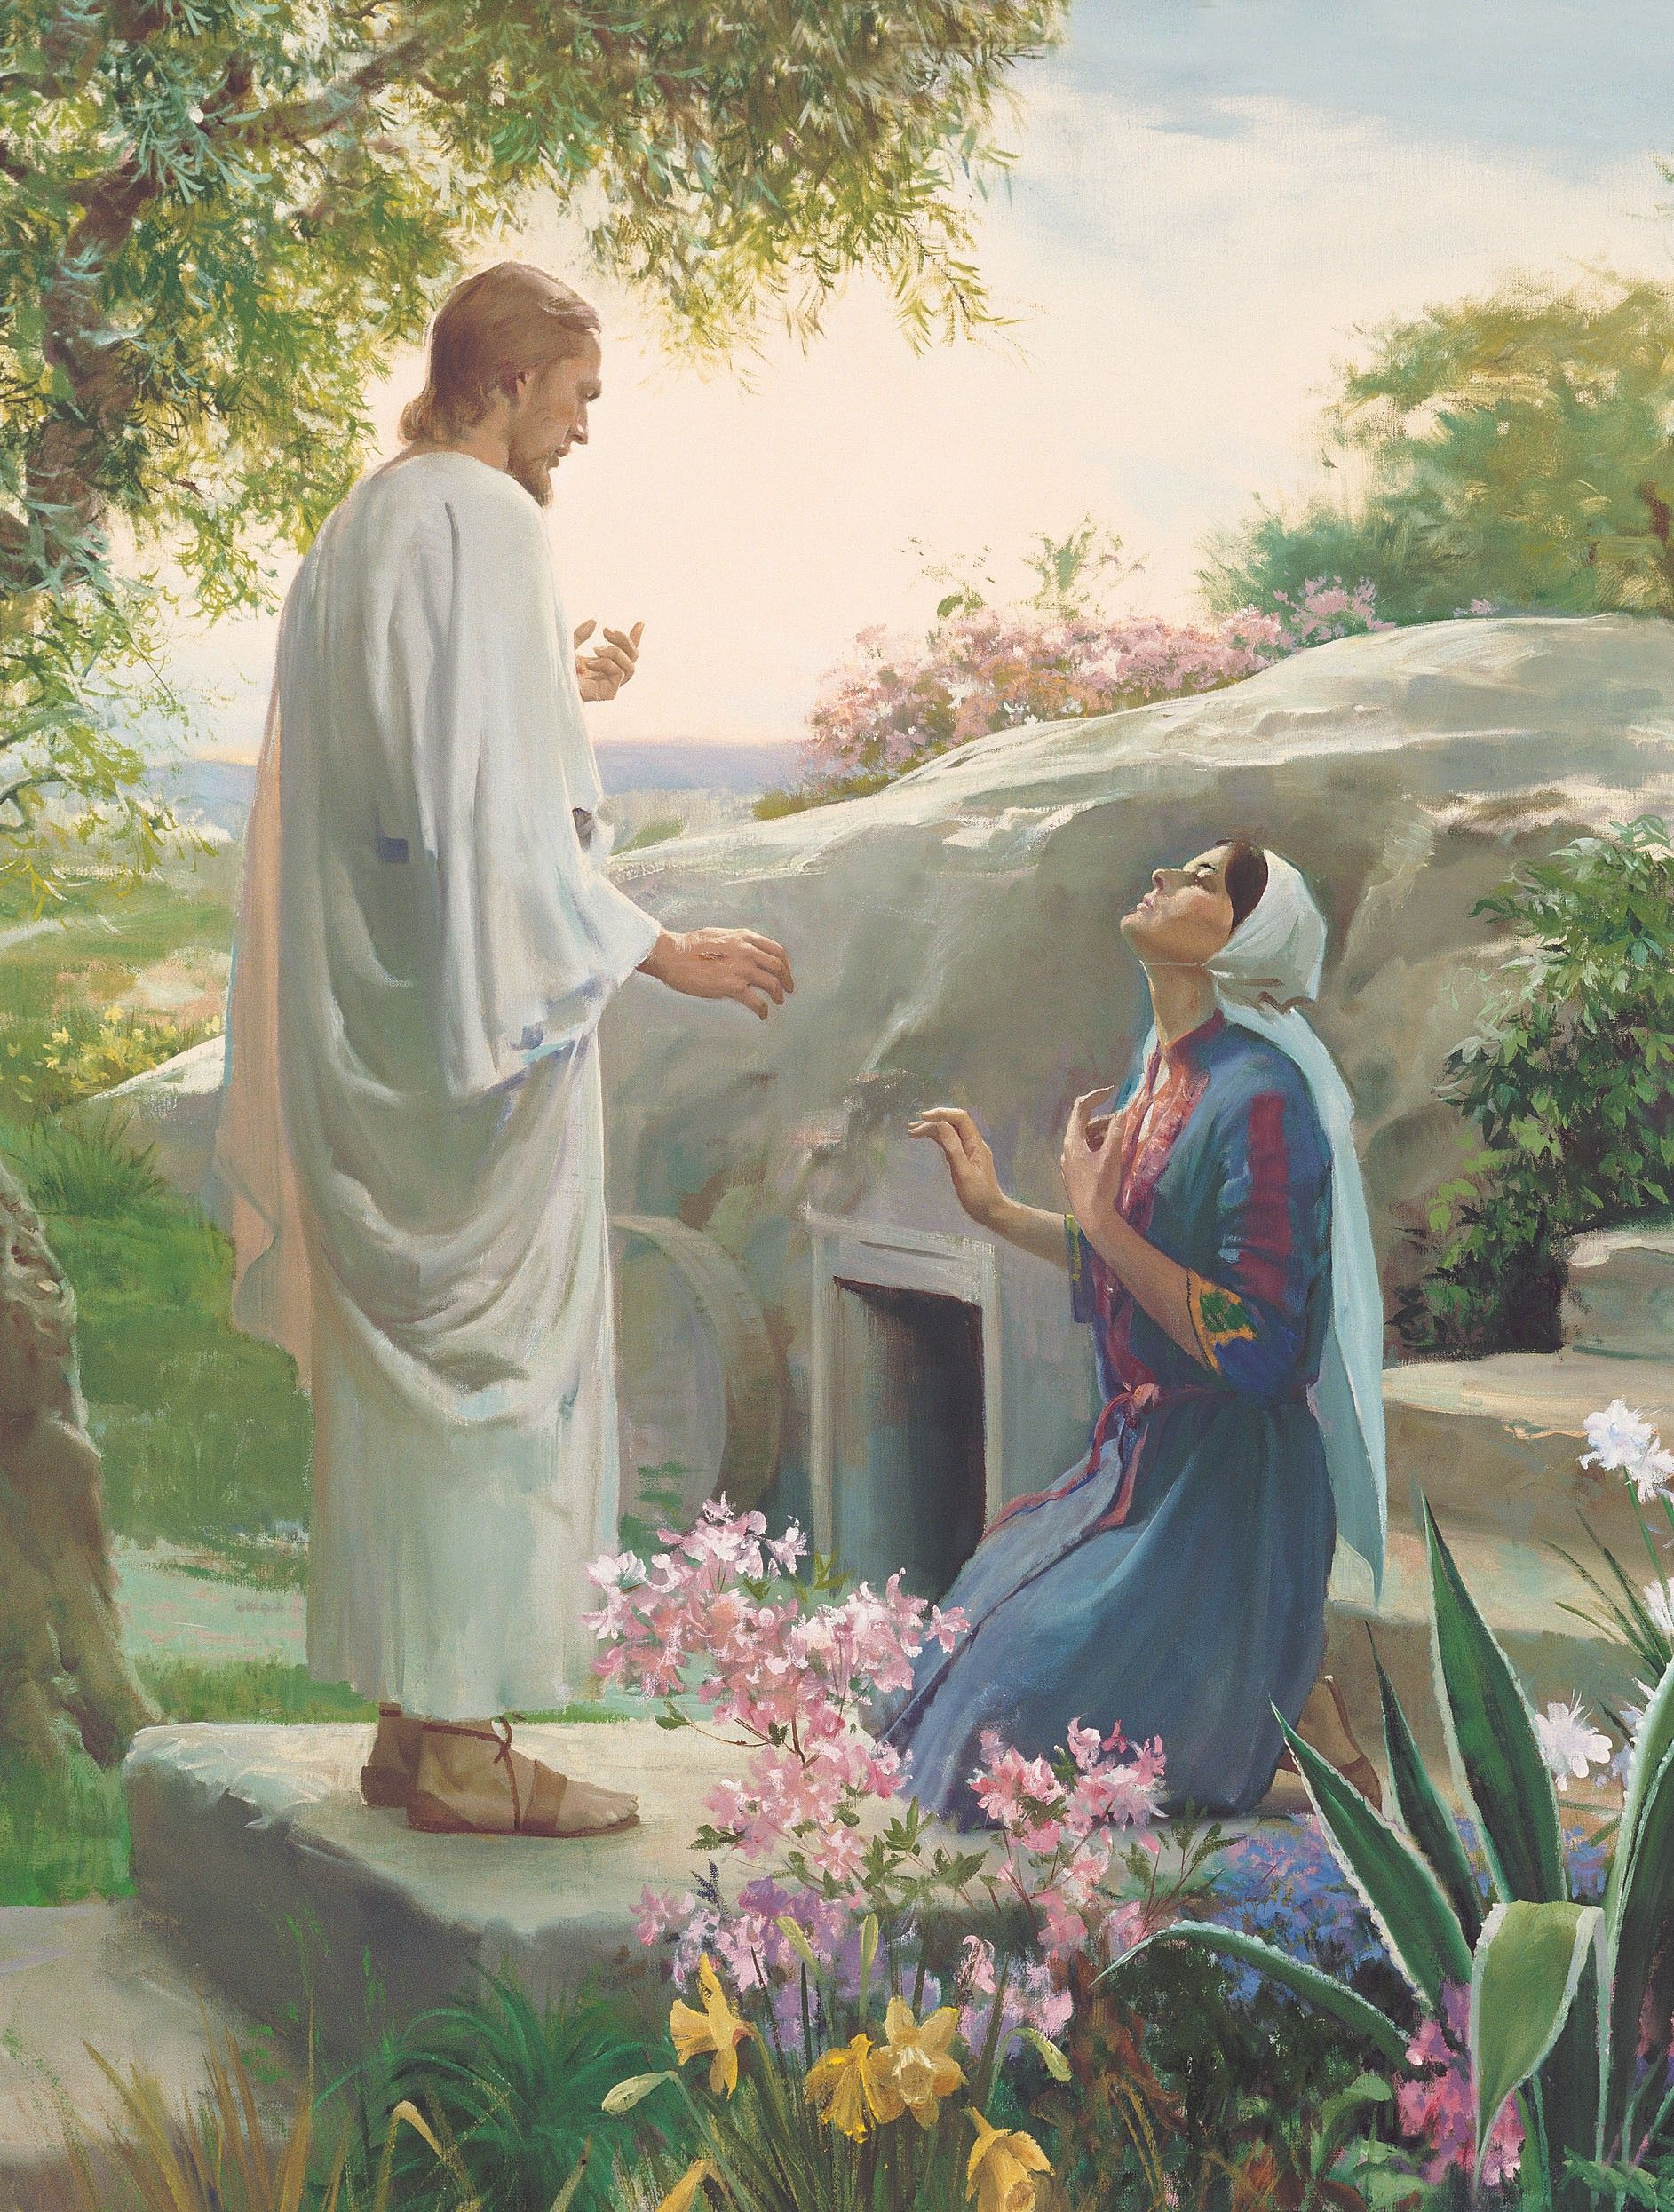 Mary and the Resurrected Lord, by Harry Anderson (62186); GAK 233; nursery manual lesson 29, page 122; Primary manual 2-62; Primary manual 7-36; Isaiah 25:8; John 20:10–18